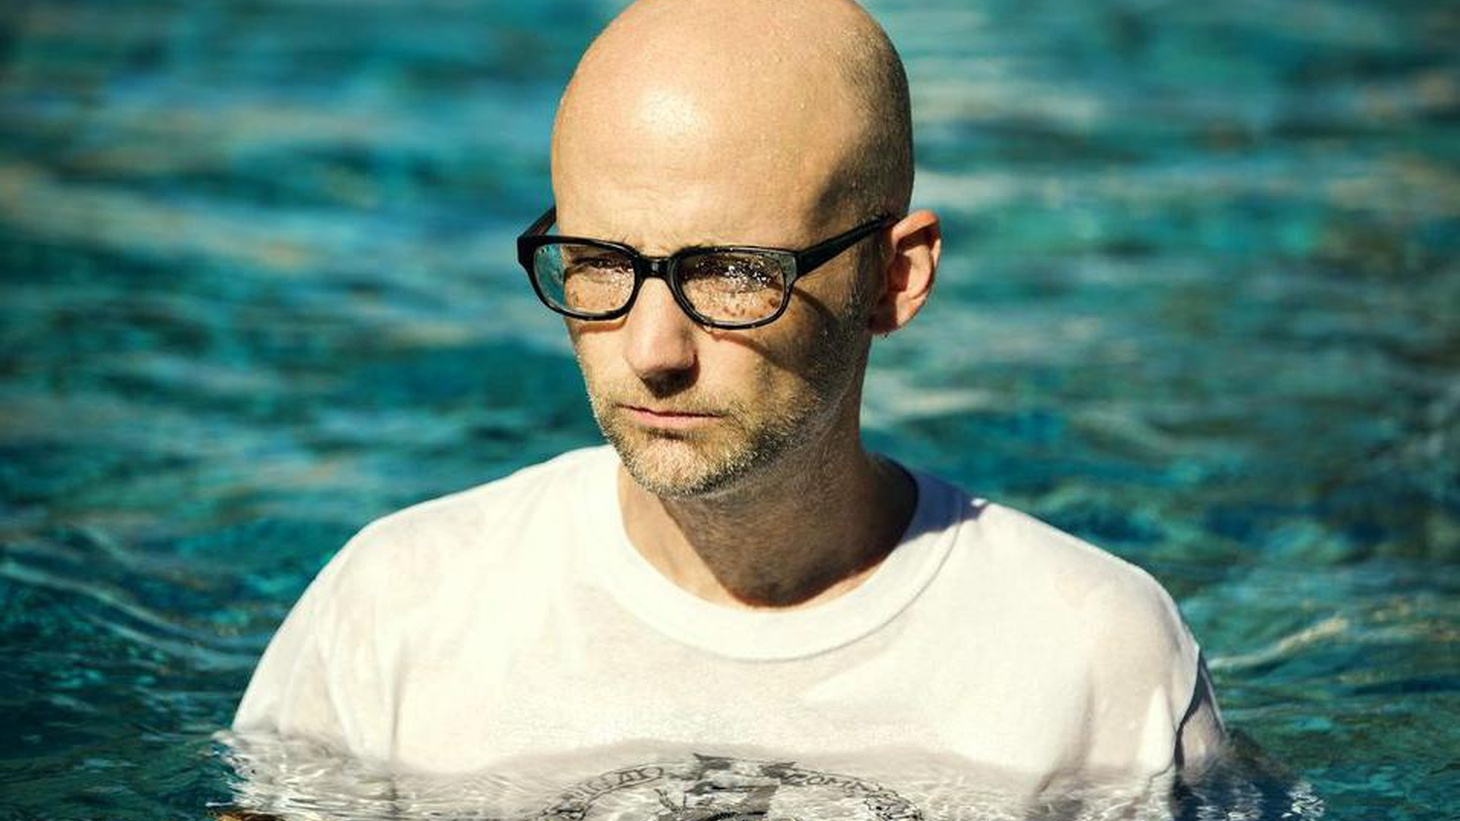 An honorary member of the KCRW family, Moby brings a full band and lots of surprises to KCRW.